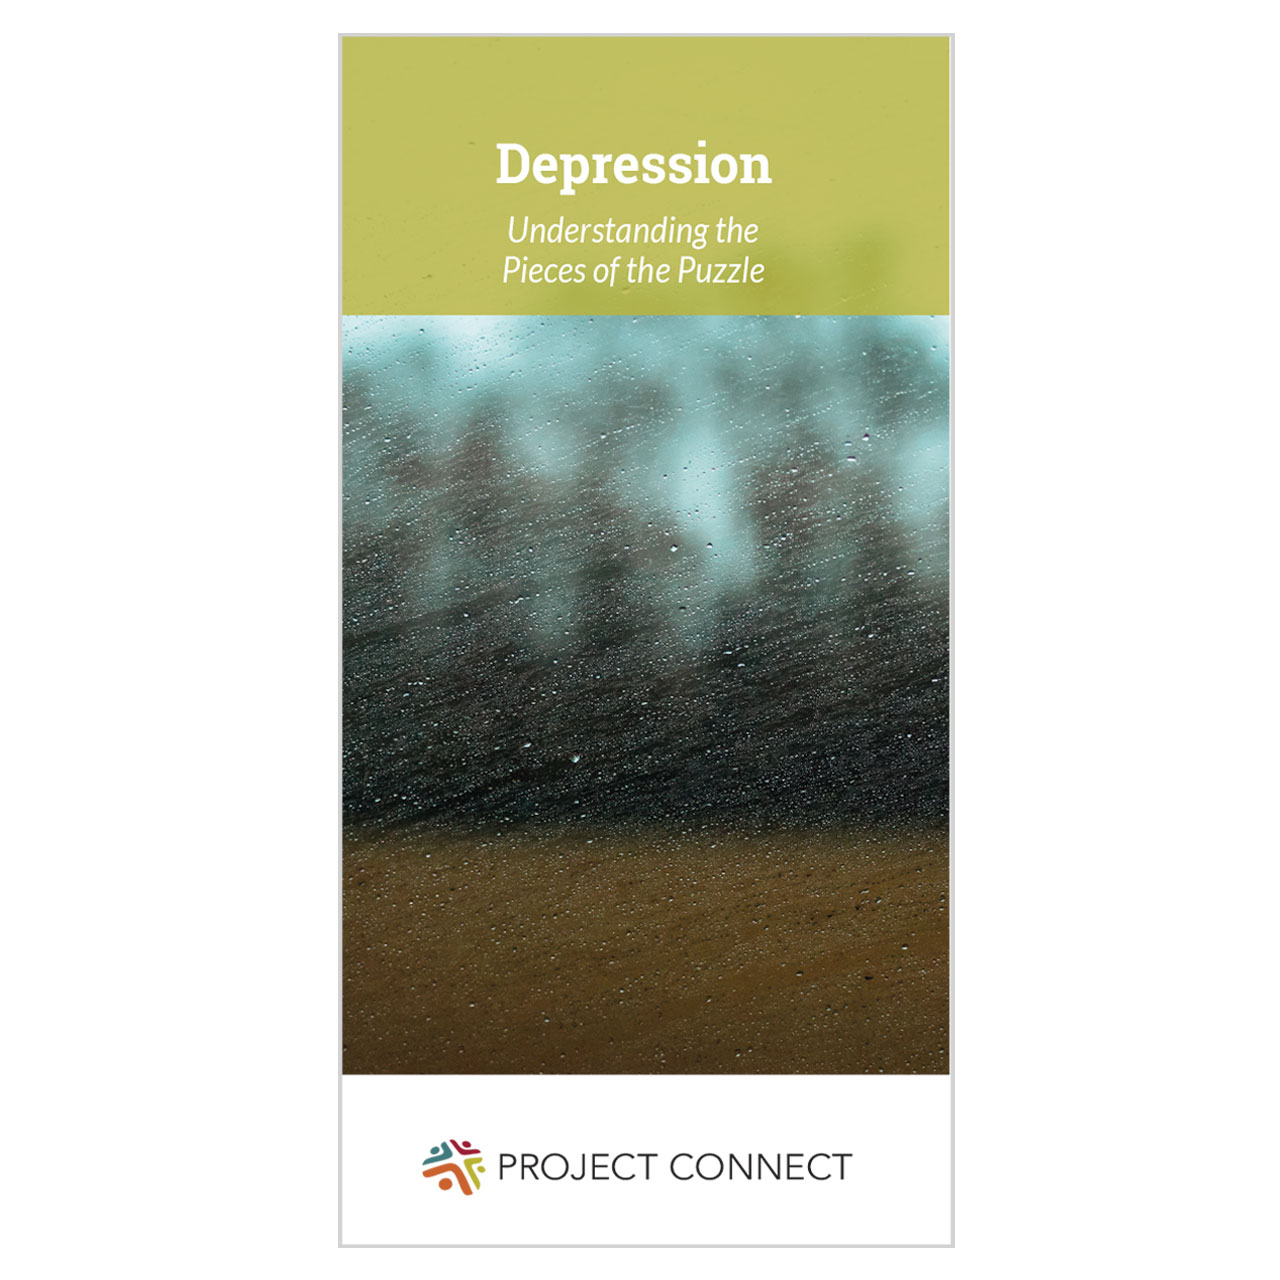 """Depression Understanding the Pieces of the Puzzle"" booklet cover"